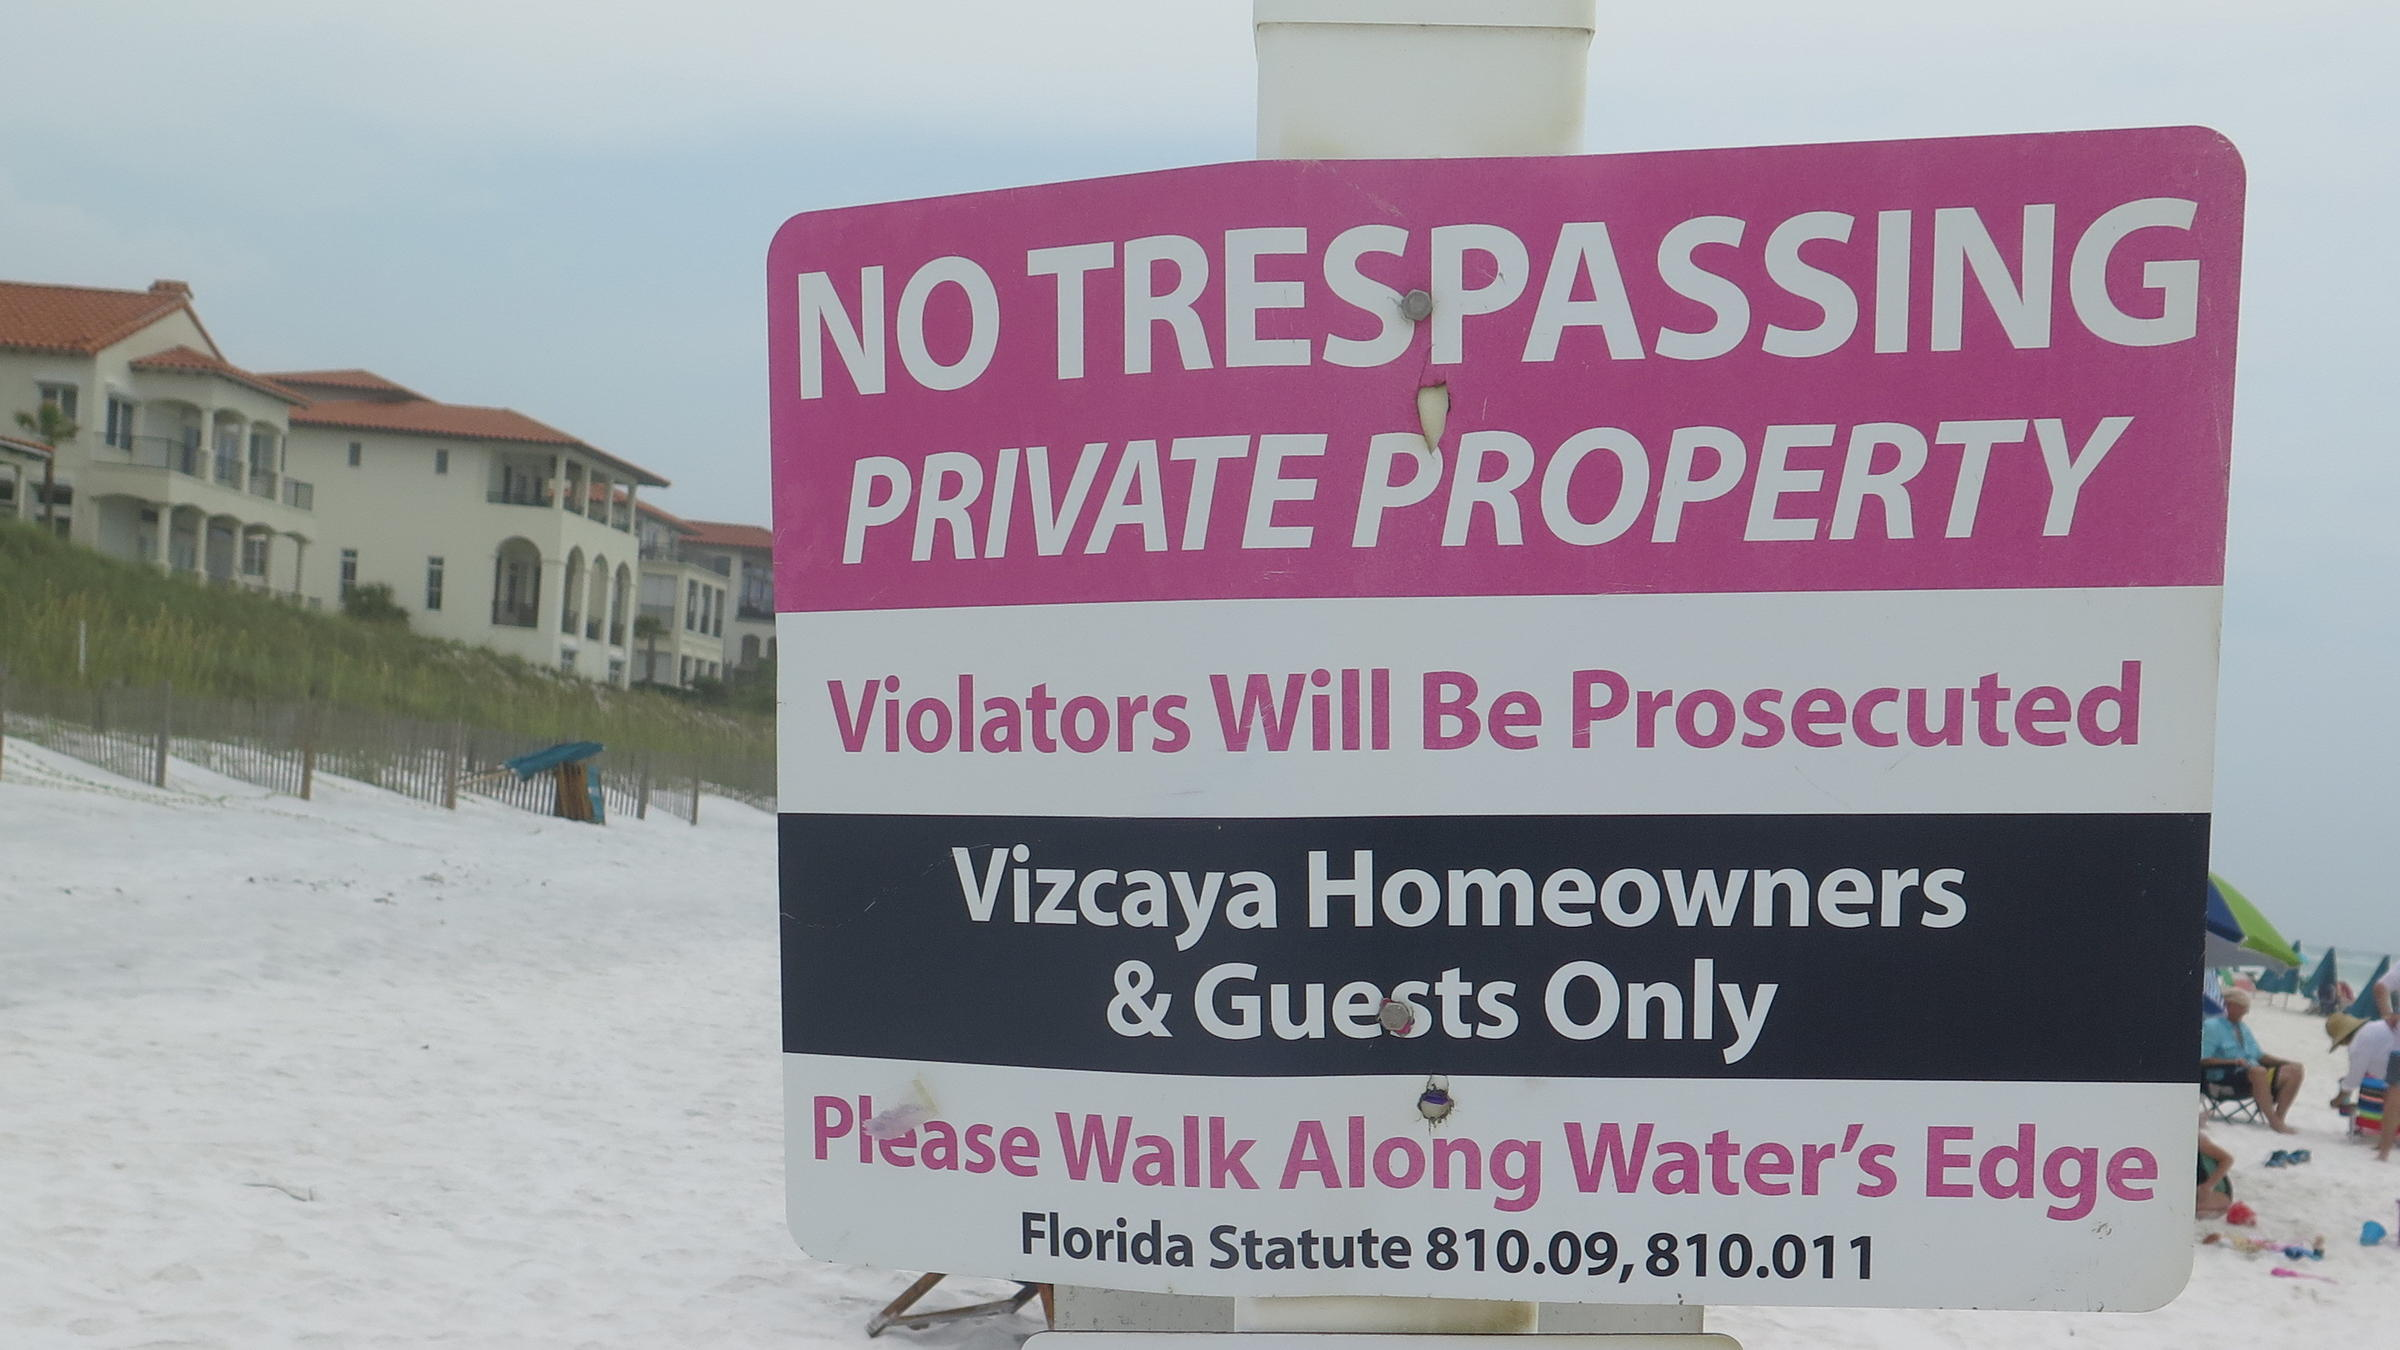 Santa Rosa Beach In Walton County Fla With A Privately Owned Section That Is Part Of Vizcaya Residential Development